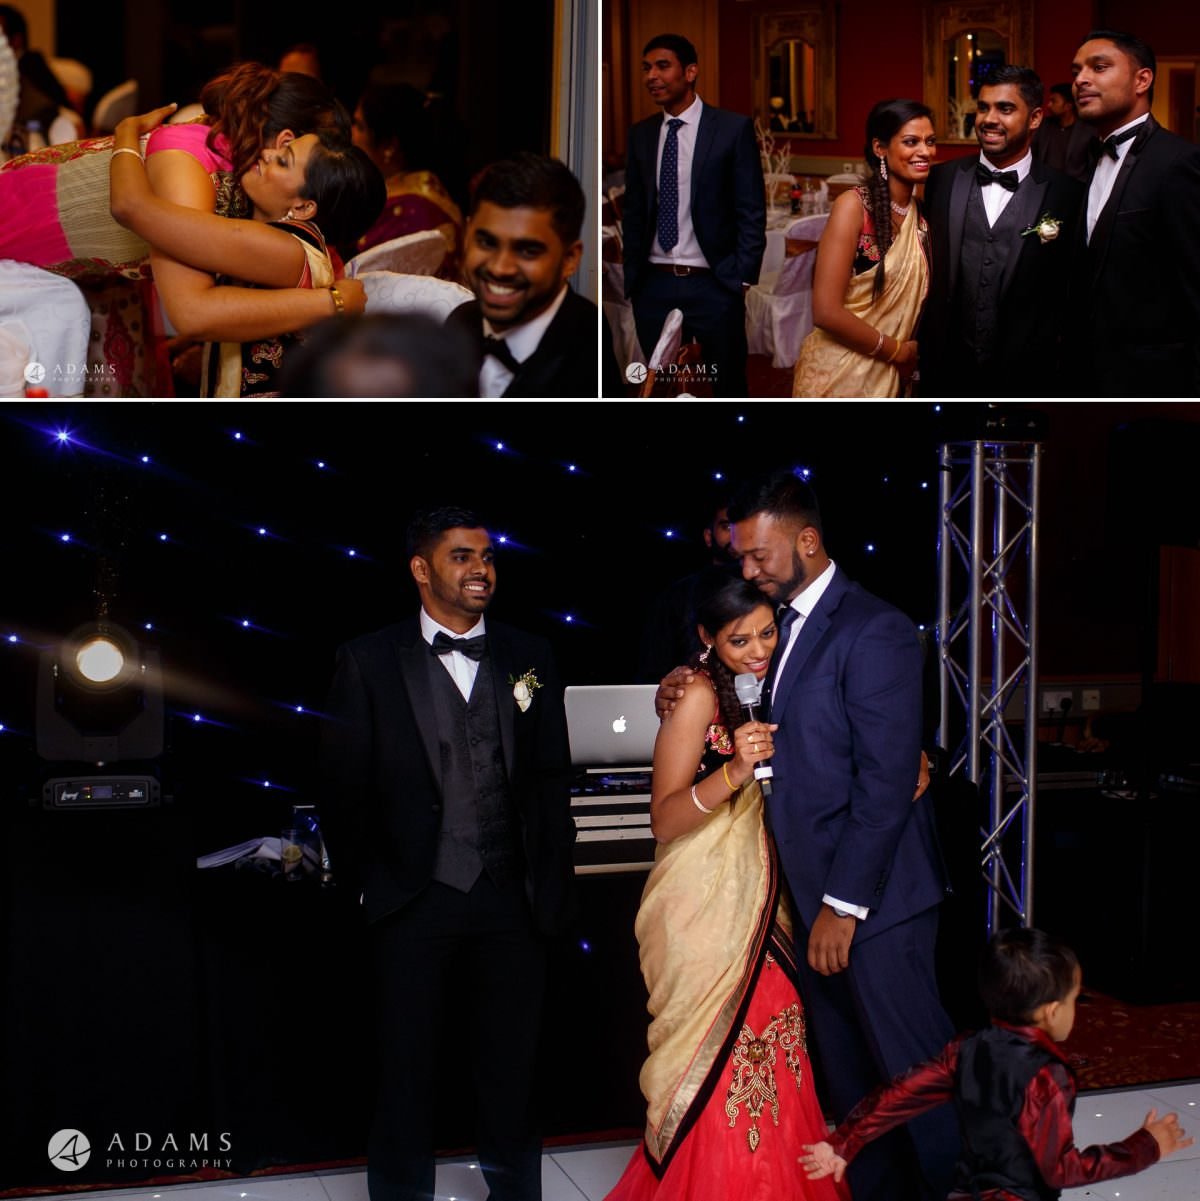 Baylis House Wedding Photographer | Sara + Anojan 27